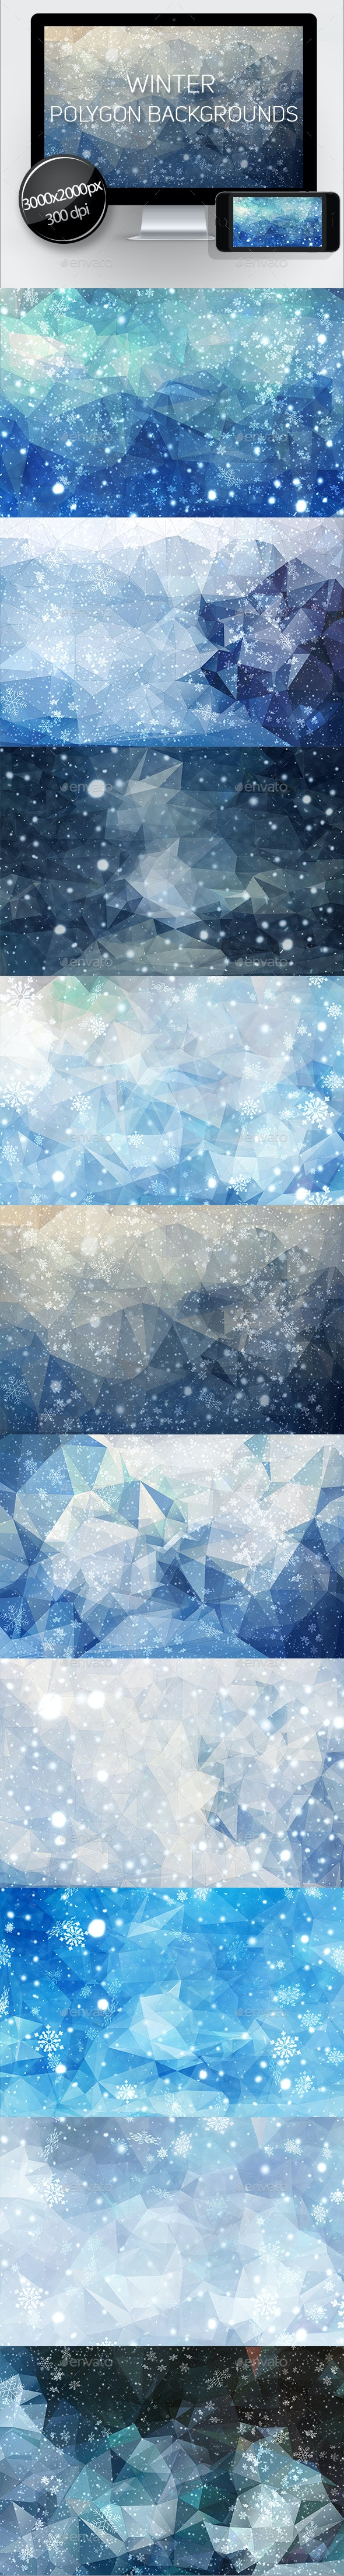 Winter Polygon Backgrounds - Abstract Backgrounds